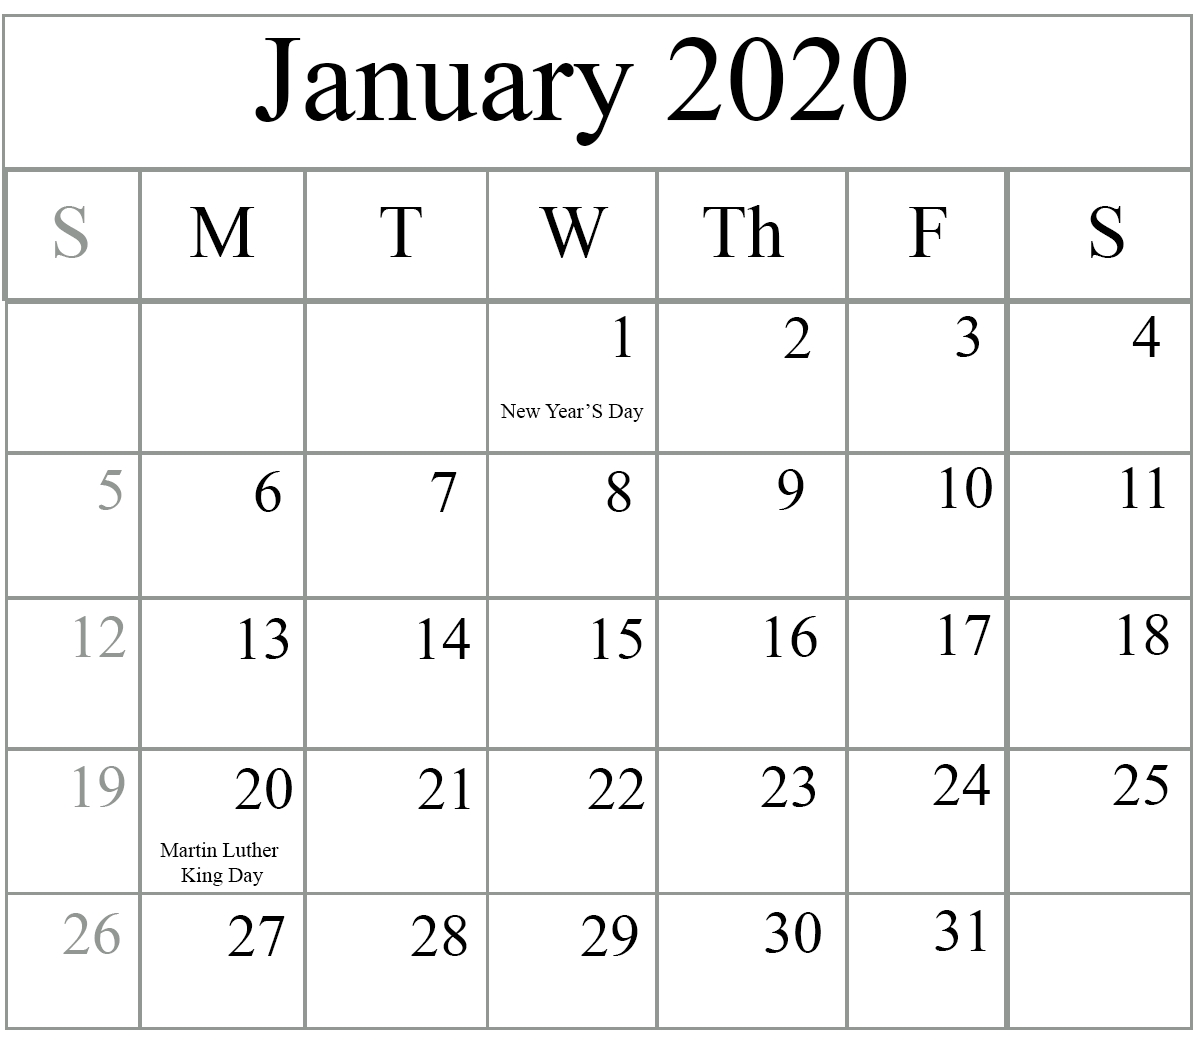 Free January 2020 Printable Calendar In Pdf, Excel & Word-January 2020 Calendar With Us Holidays